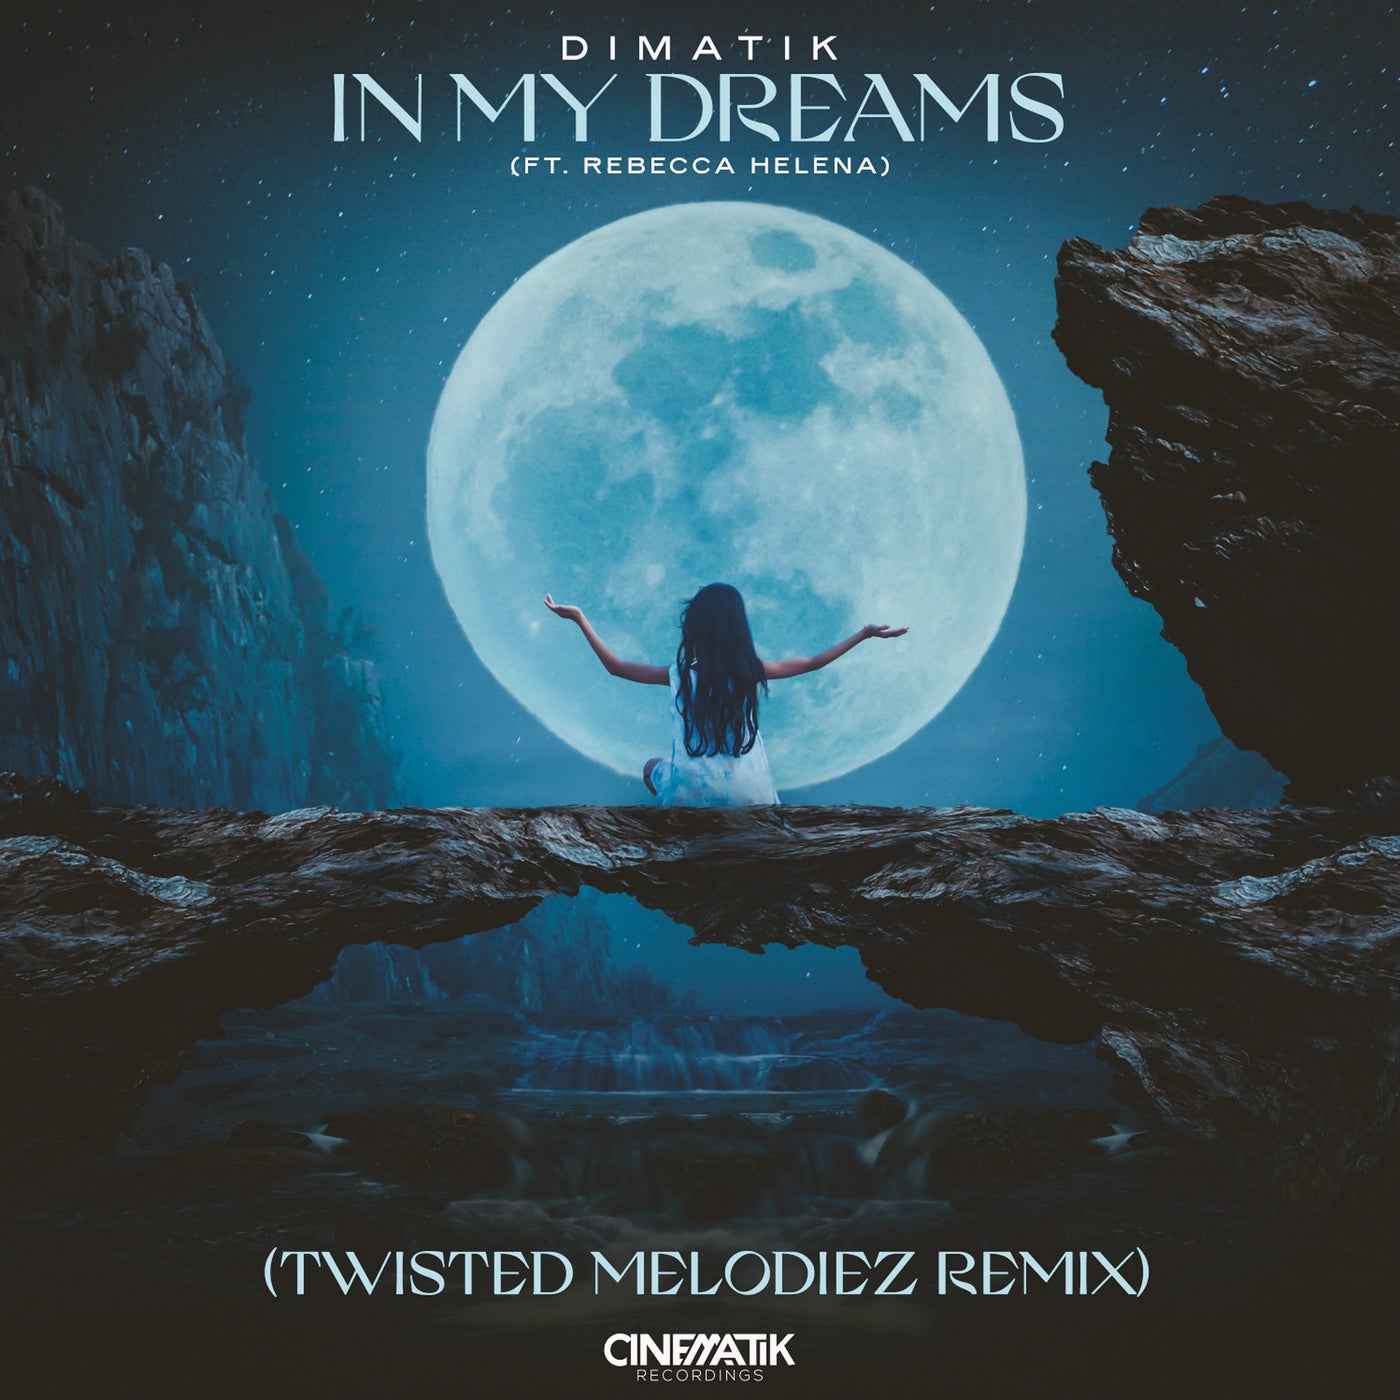 In My Dreams feat. Rebecca Helena (Twisted Melodiez Extended Remix)